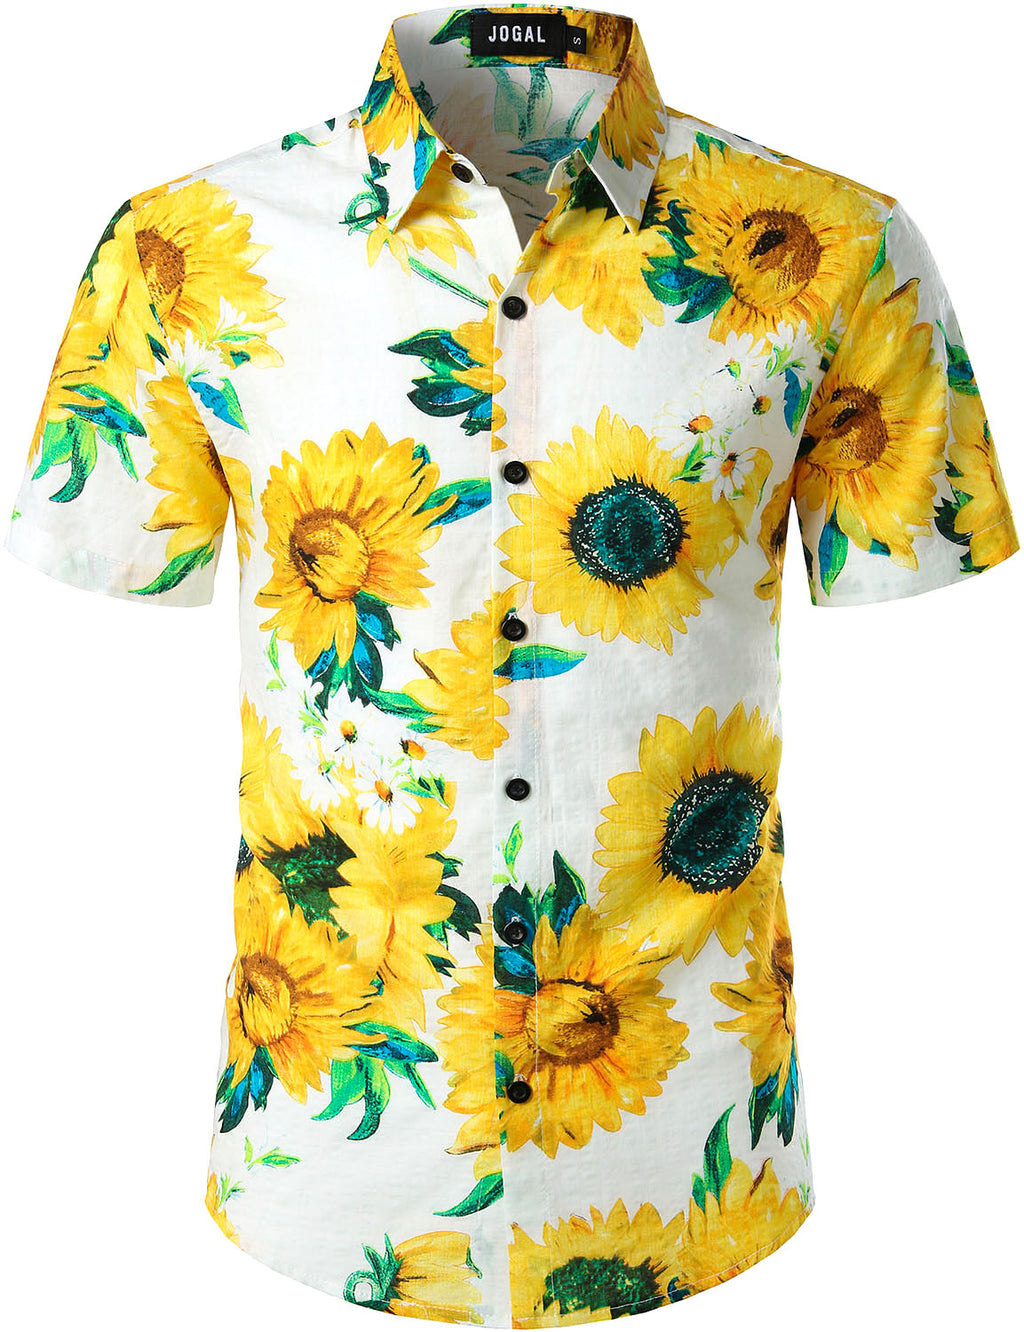 JOGAL Men's Cotton Button Down Short Sleeve Hawaiian Shirt (Sunflower)